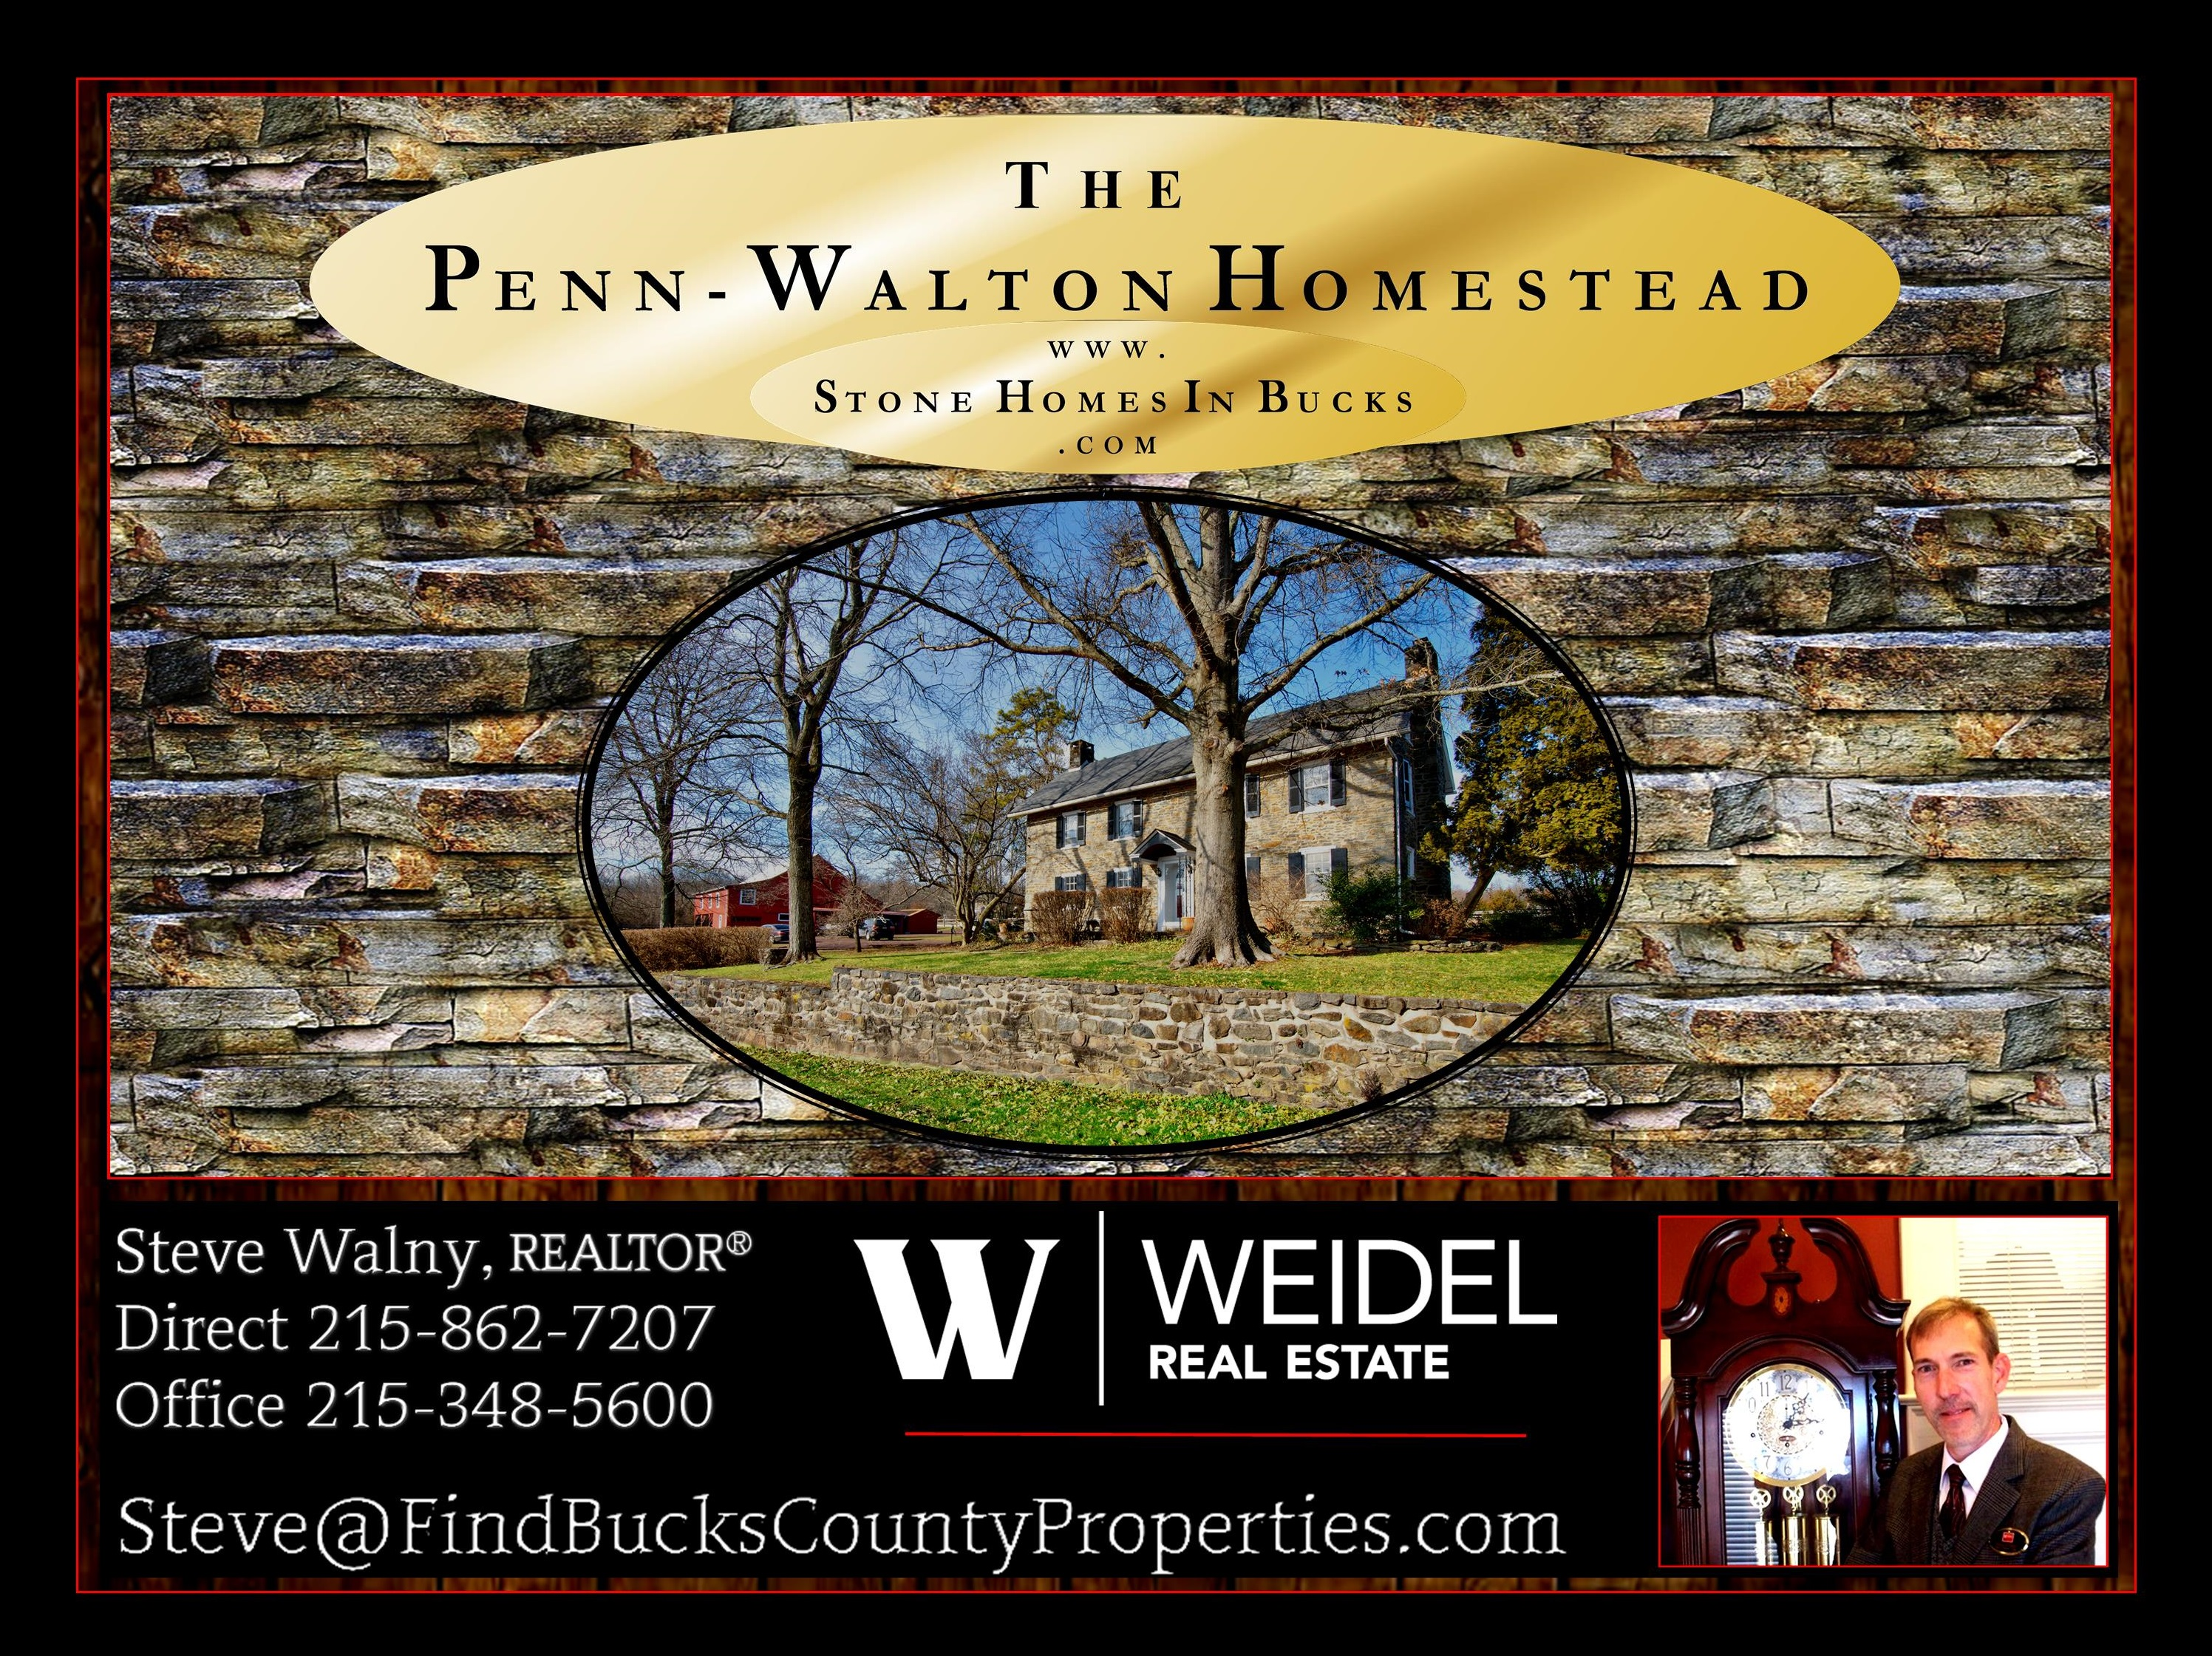 Stone Farm House Bucks County Video | Homes of Upper Bucks | Doylestown Realtor | WEIDEL Real Estate | WEIDEL Realtors | Steve Walny